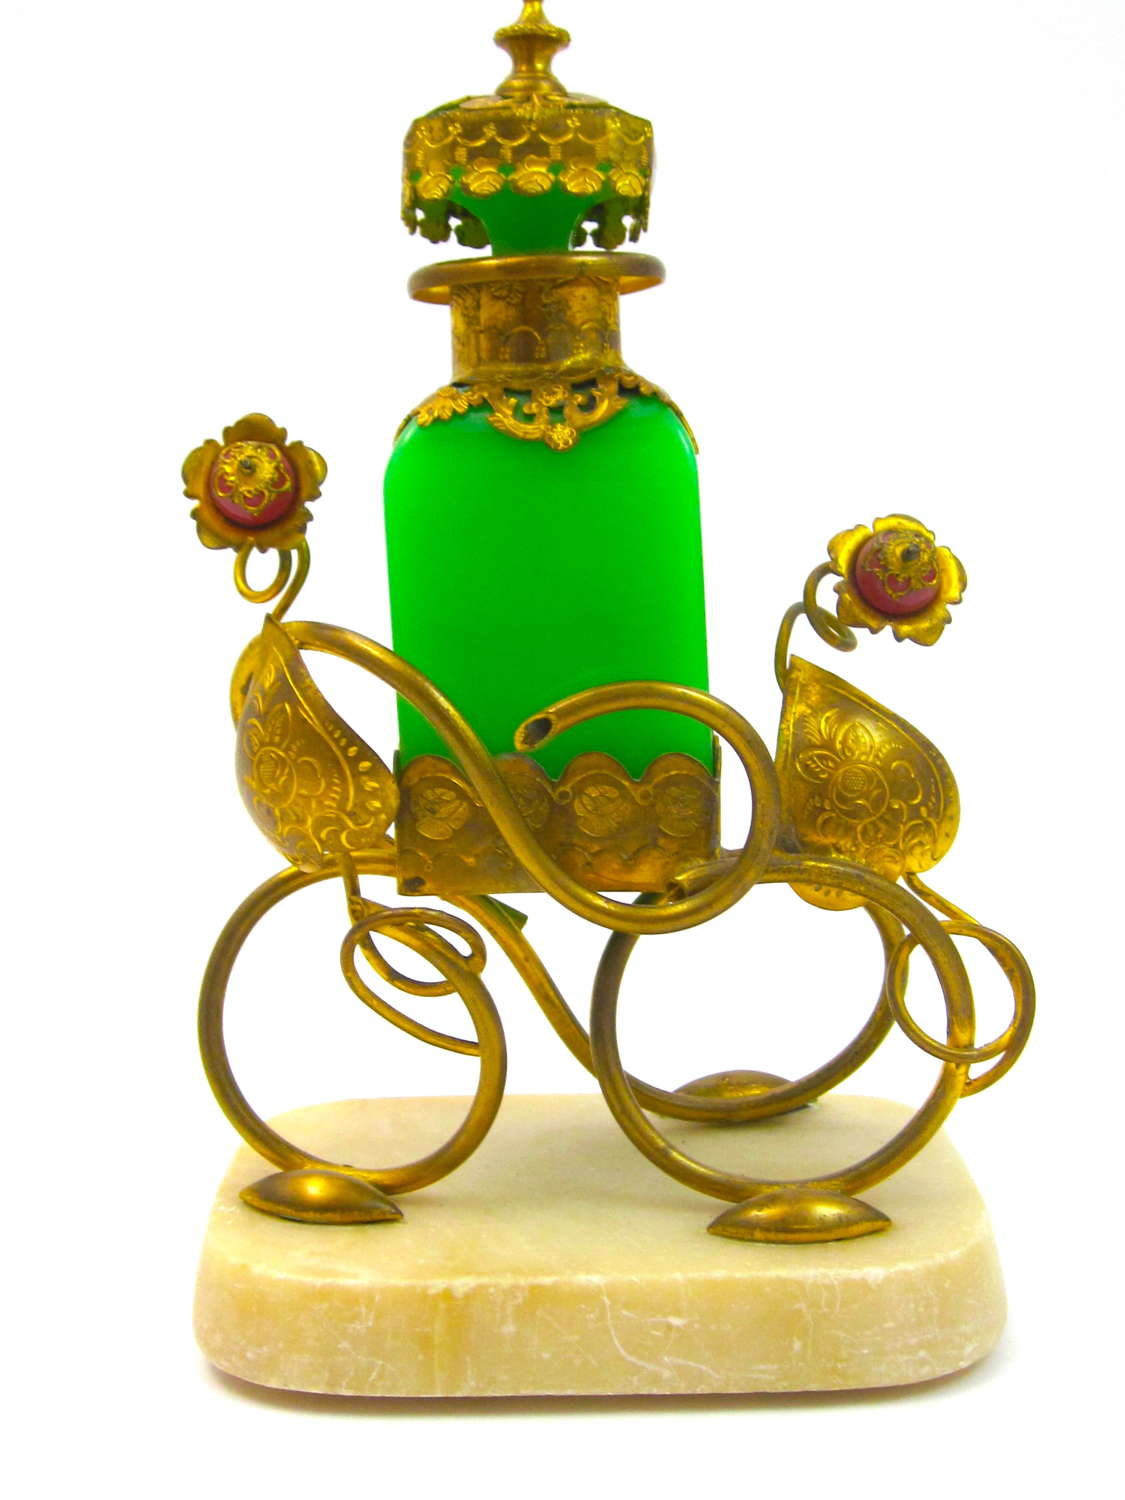 Antique Palais Royal Green Opaline Glass Perfume Bottle Set